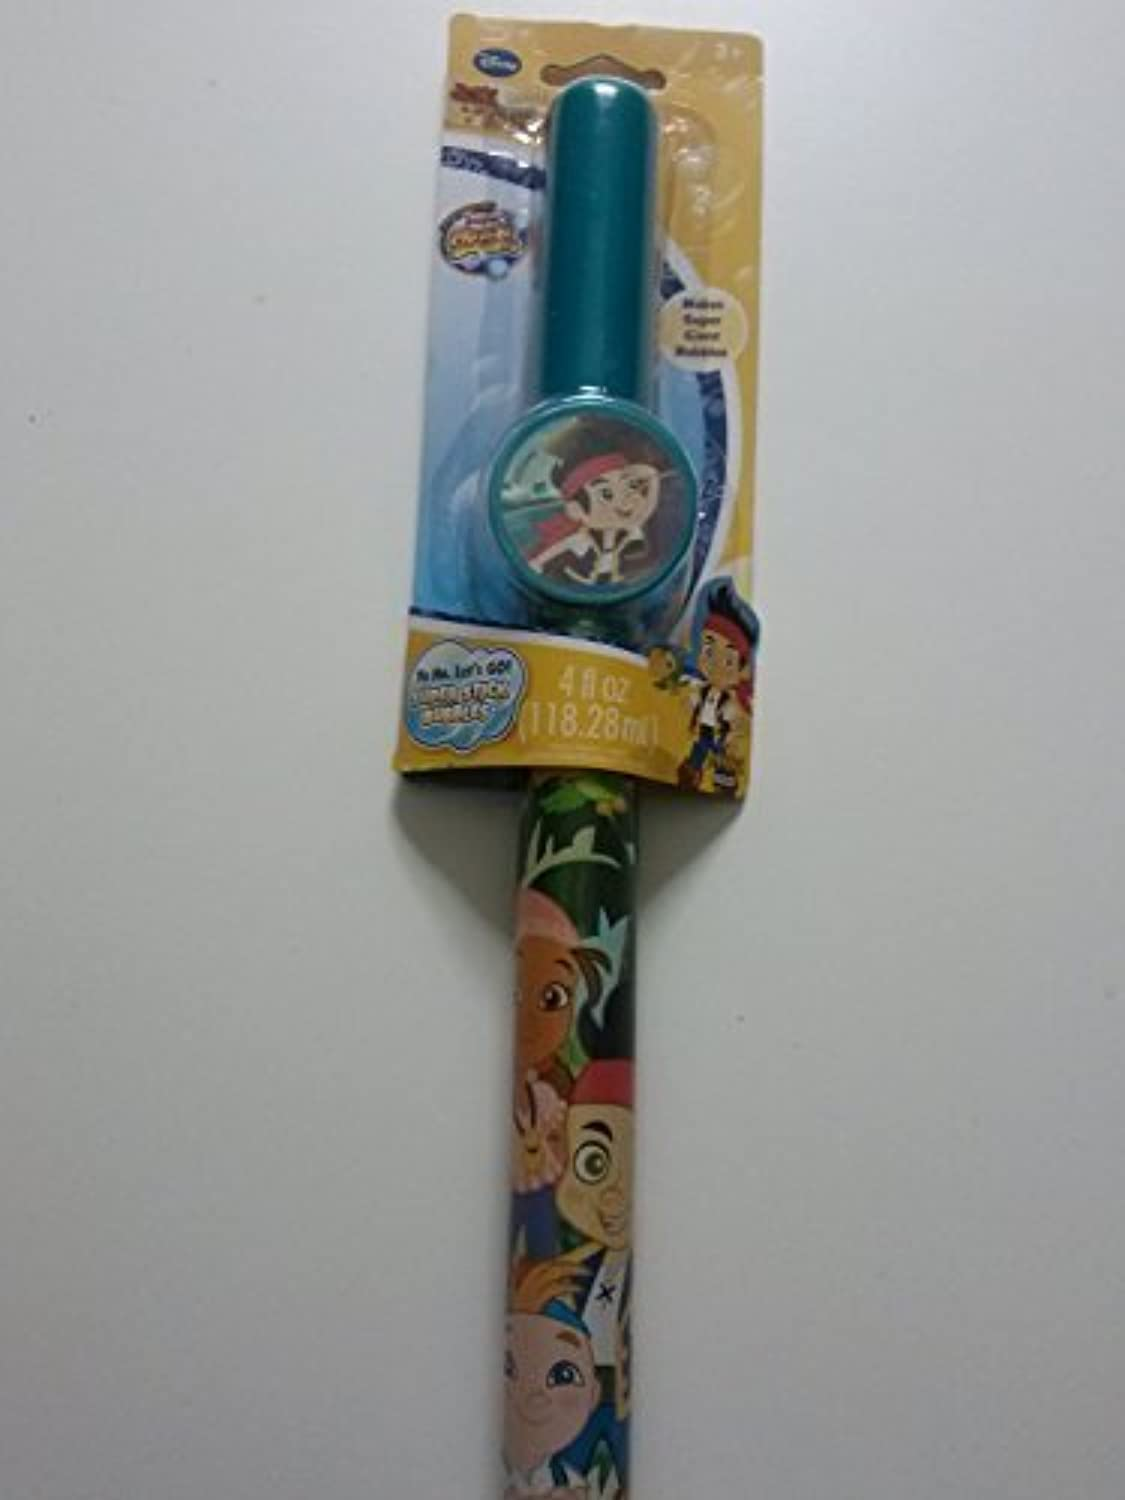 Jake and the Never Land Pirates Yo Ho, Let's Go Super Stick Bubbles by Imperial Toy